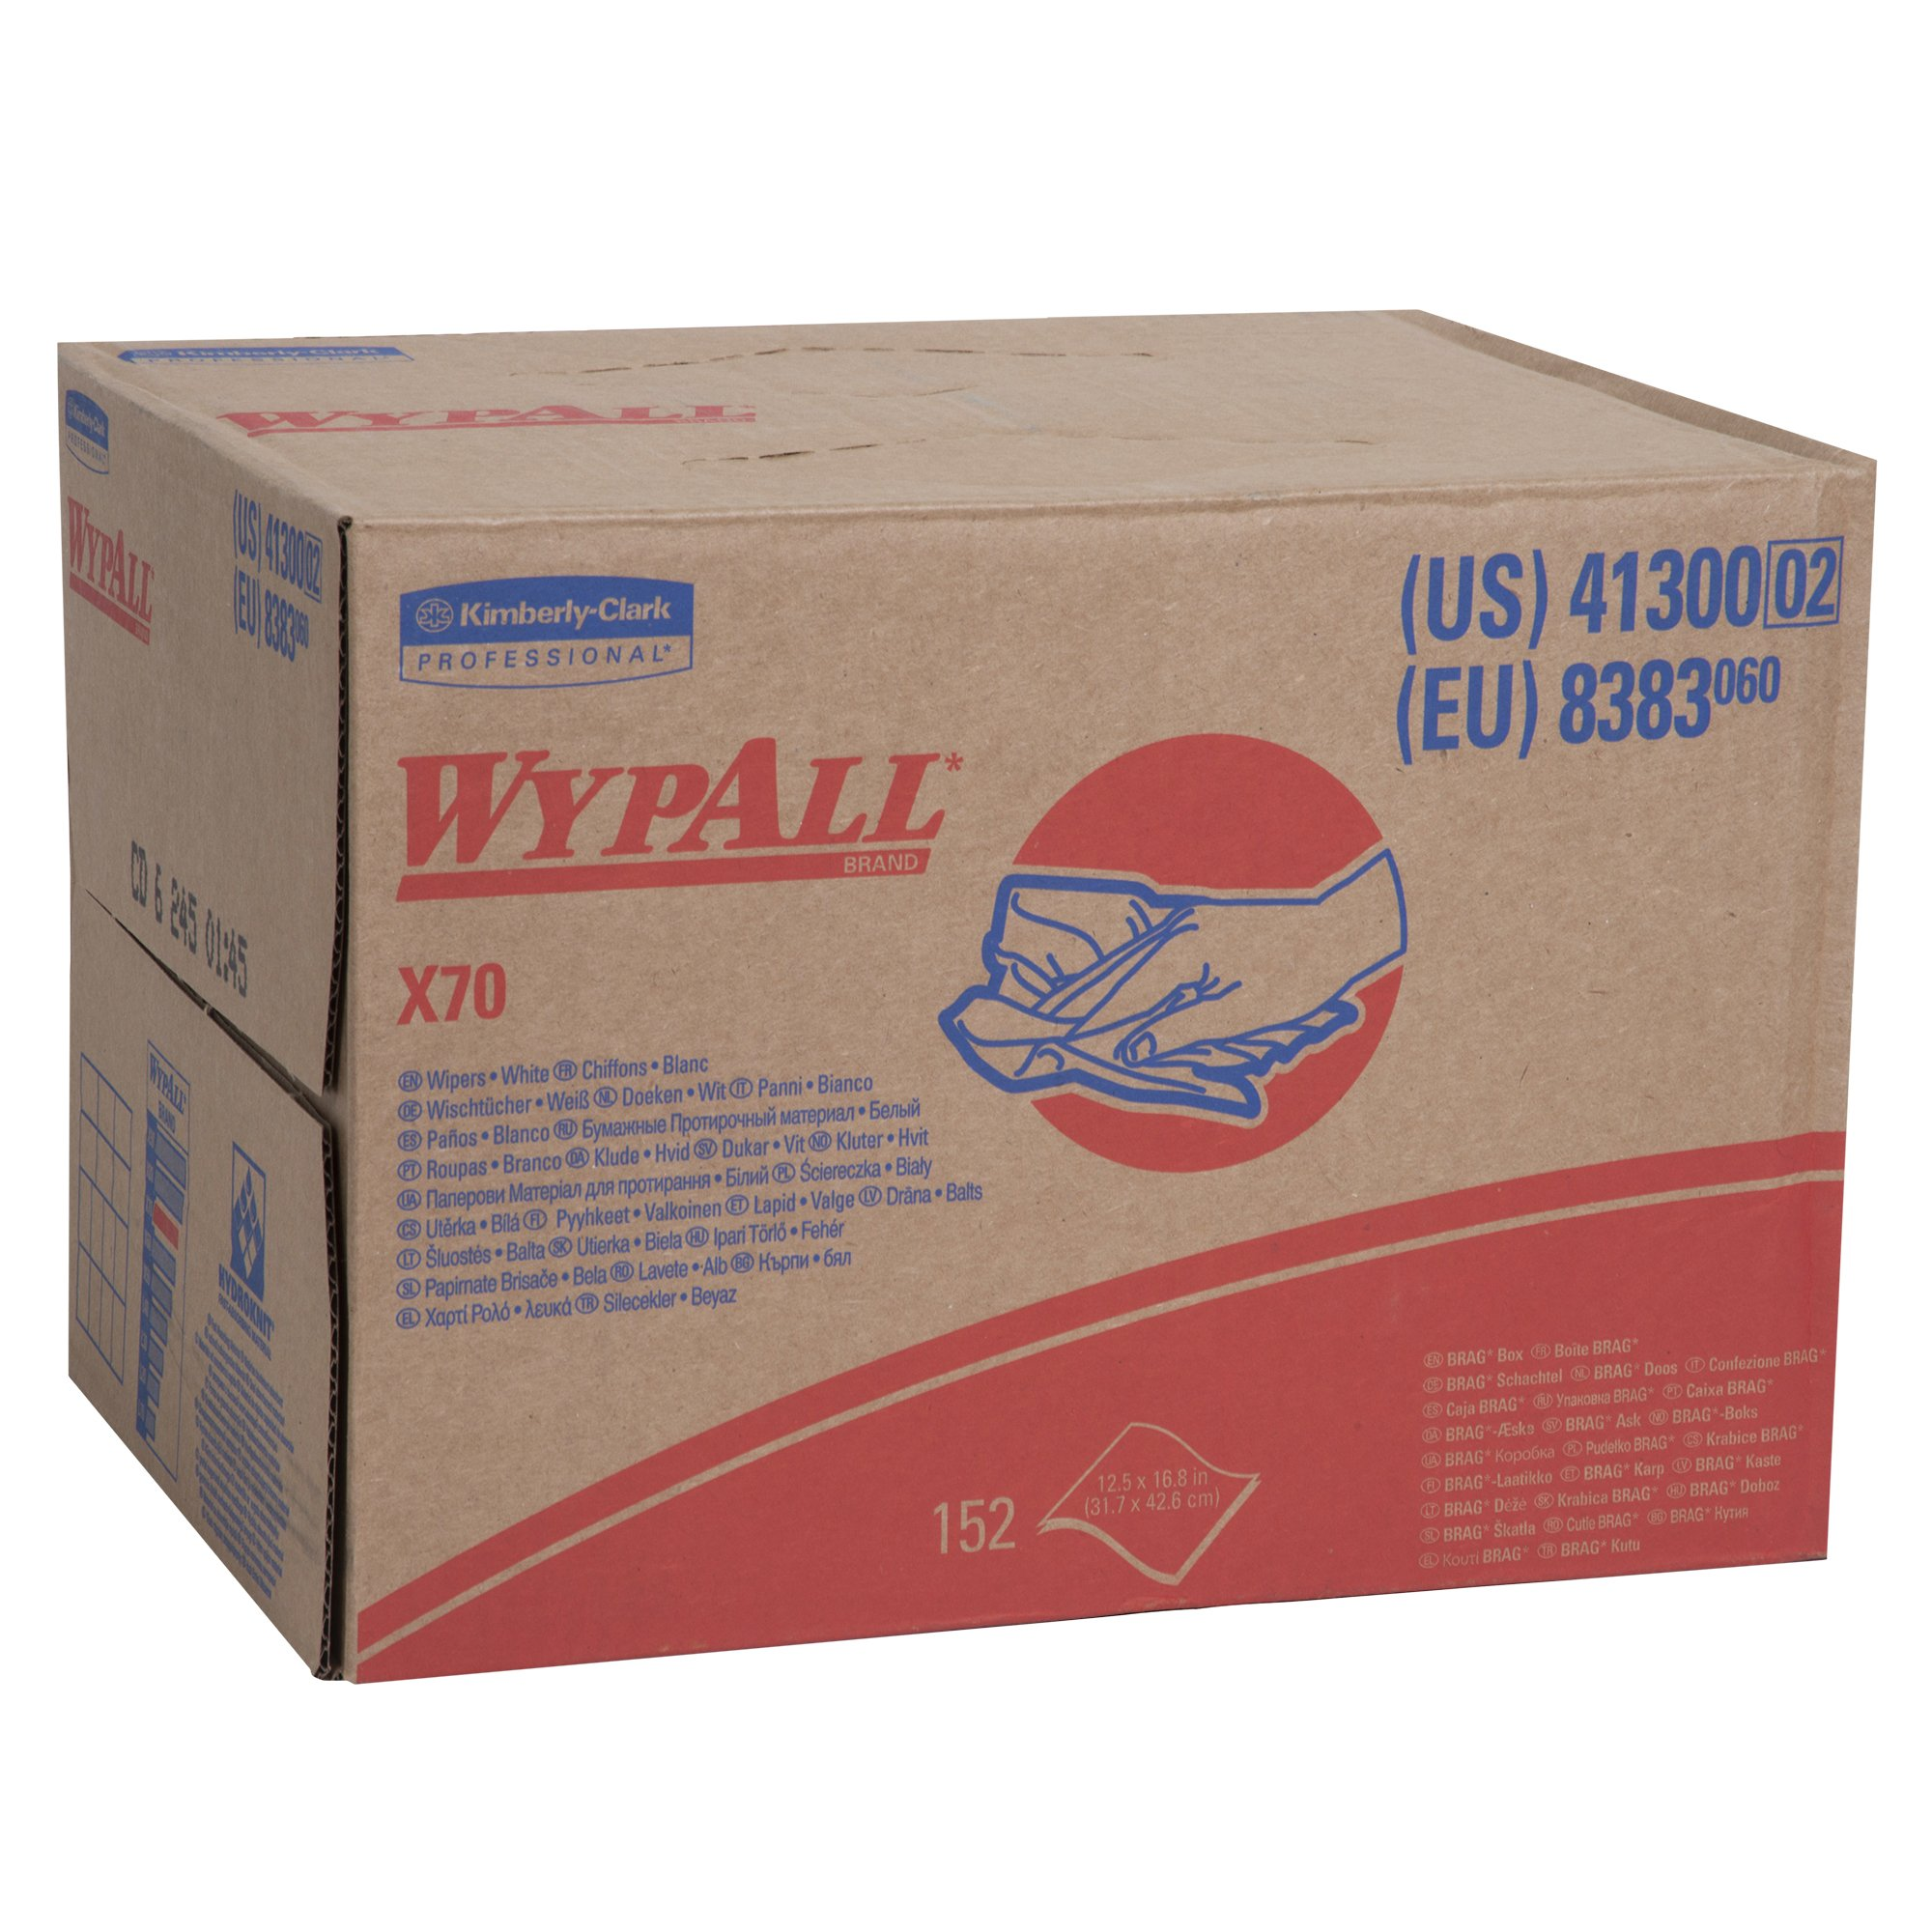 WypAll X70 Extended Use Reusable Cloths (41300), Brag Box, Long Lasting Performance, White, 1 Box, 152 Sheets